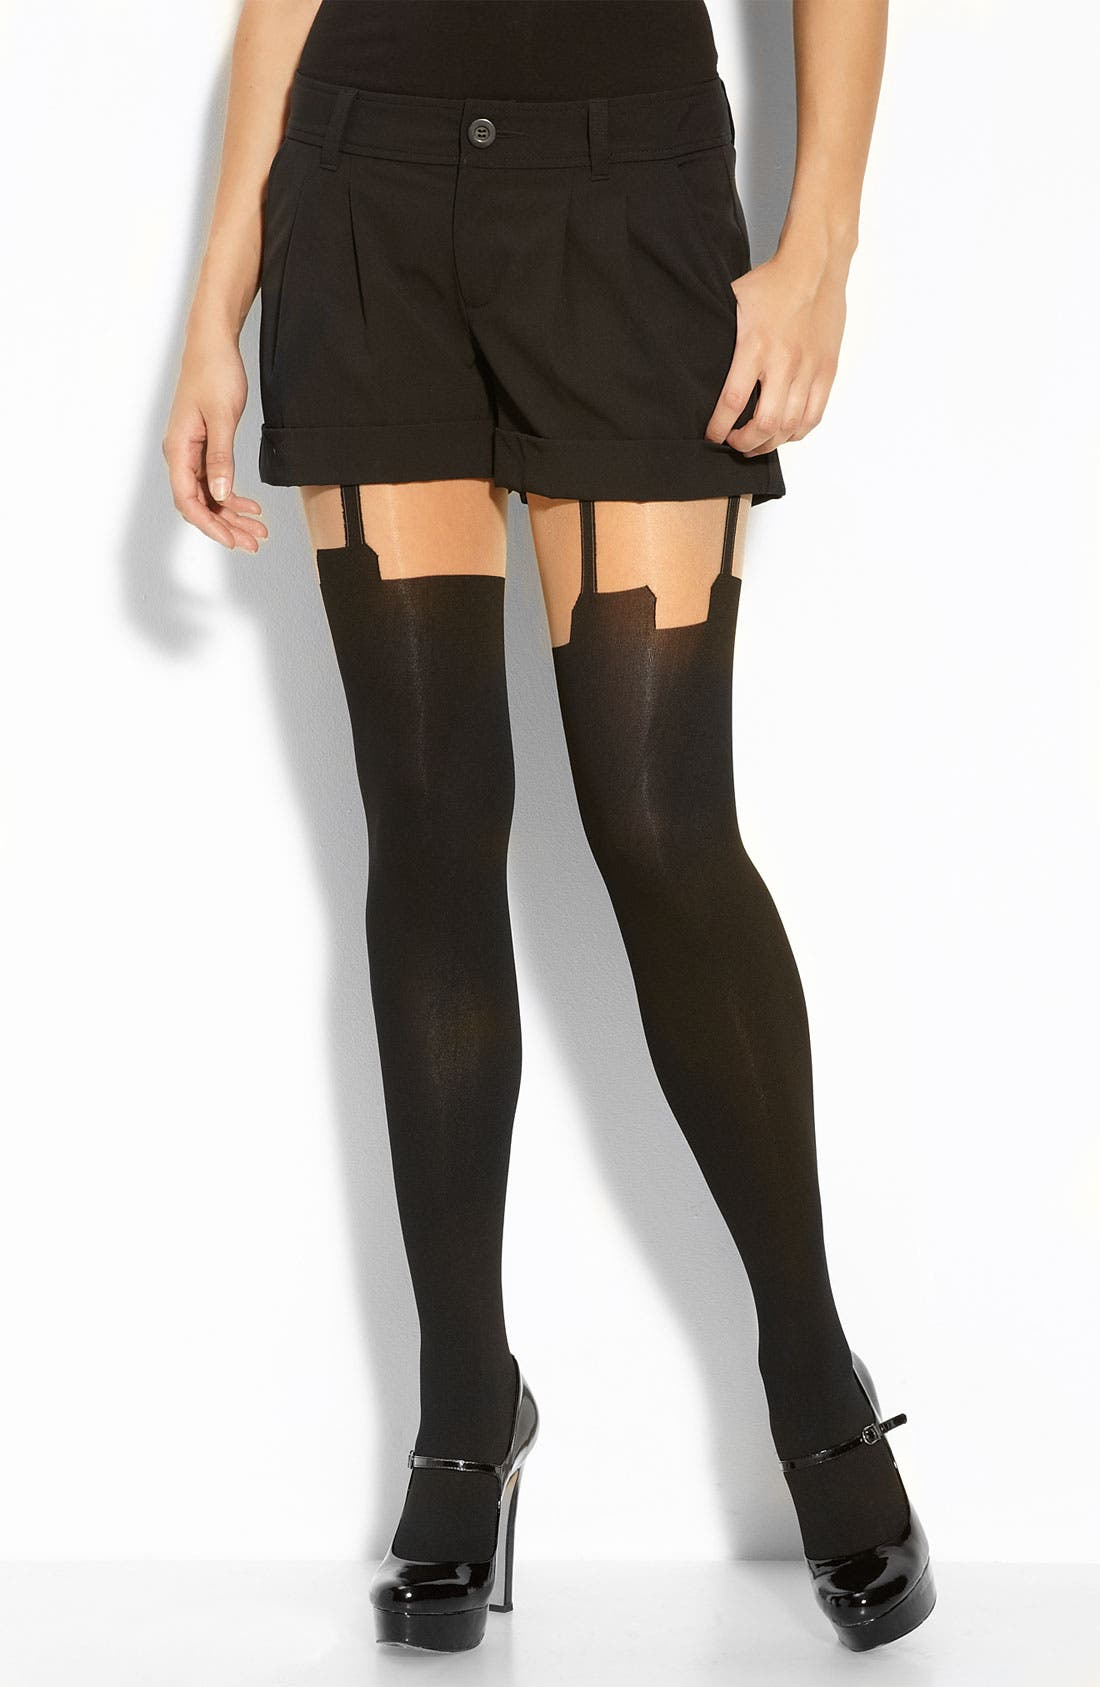 Main Image - Pretty Polly 'House of Holland Super Suspender' Tights